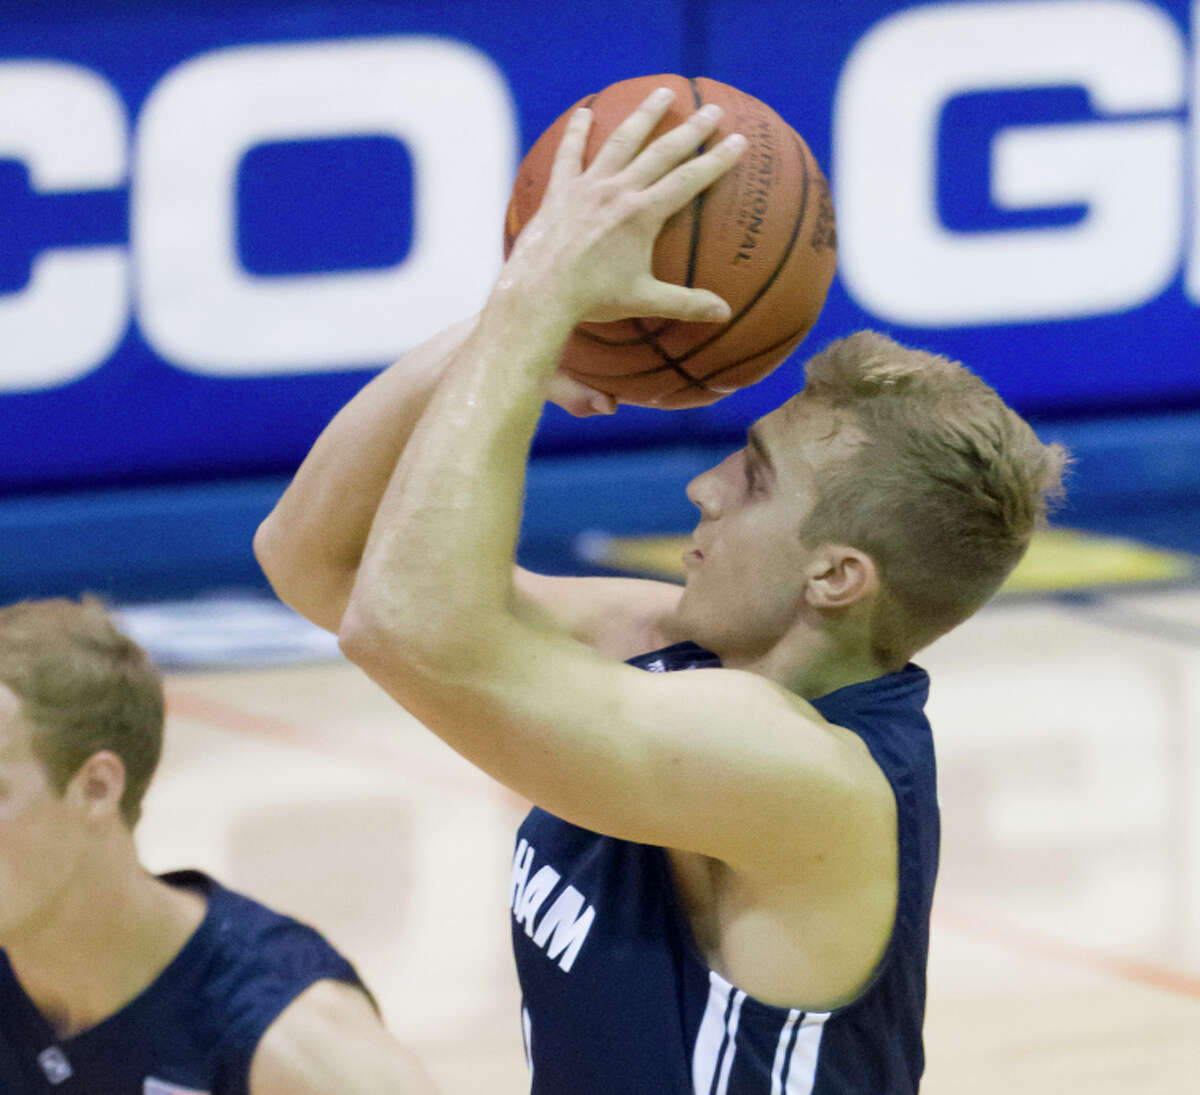 BYU guard Chase Fischer scored 30 points in a victory over Chaminade - all on three-pointers.